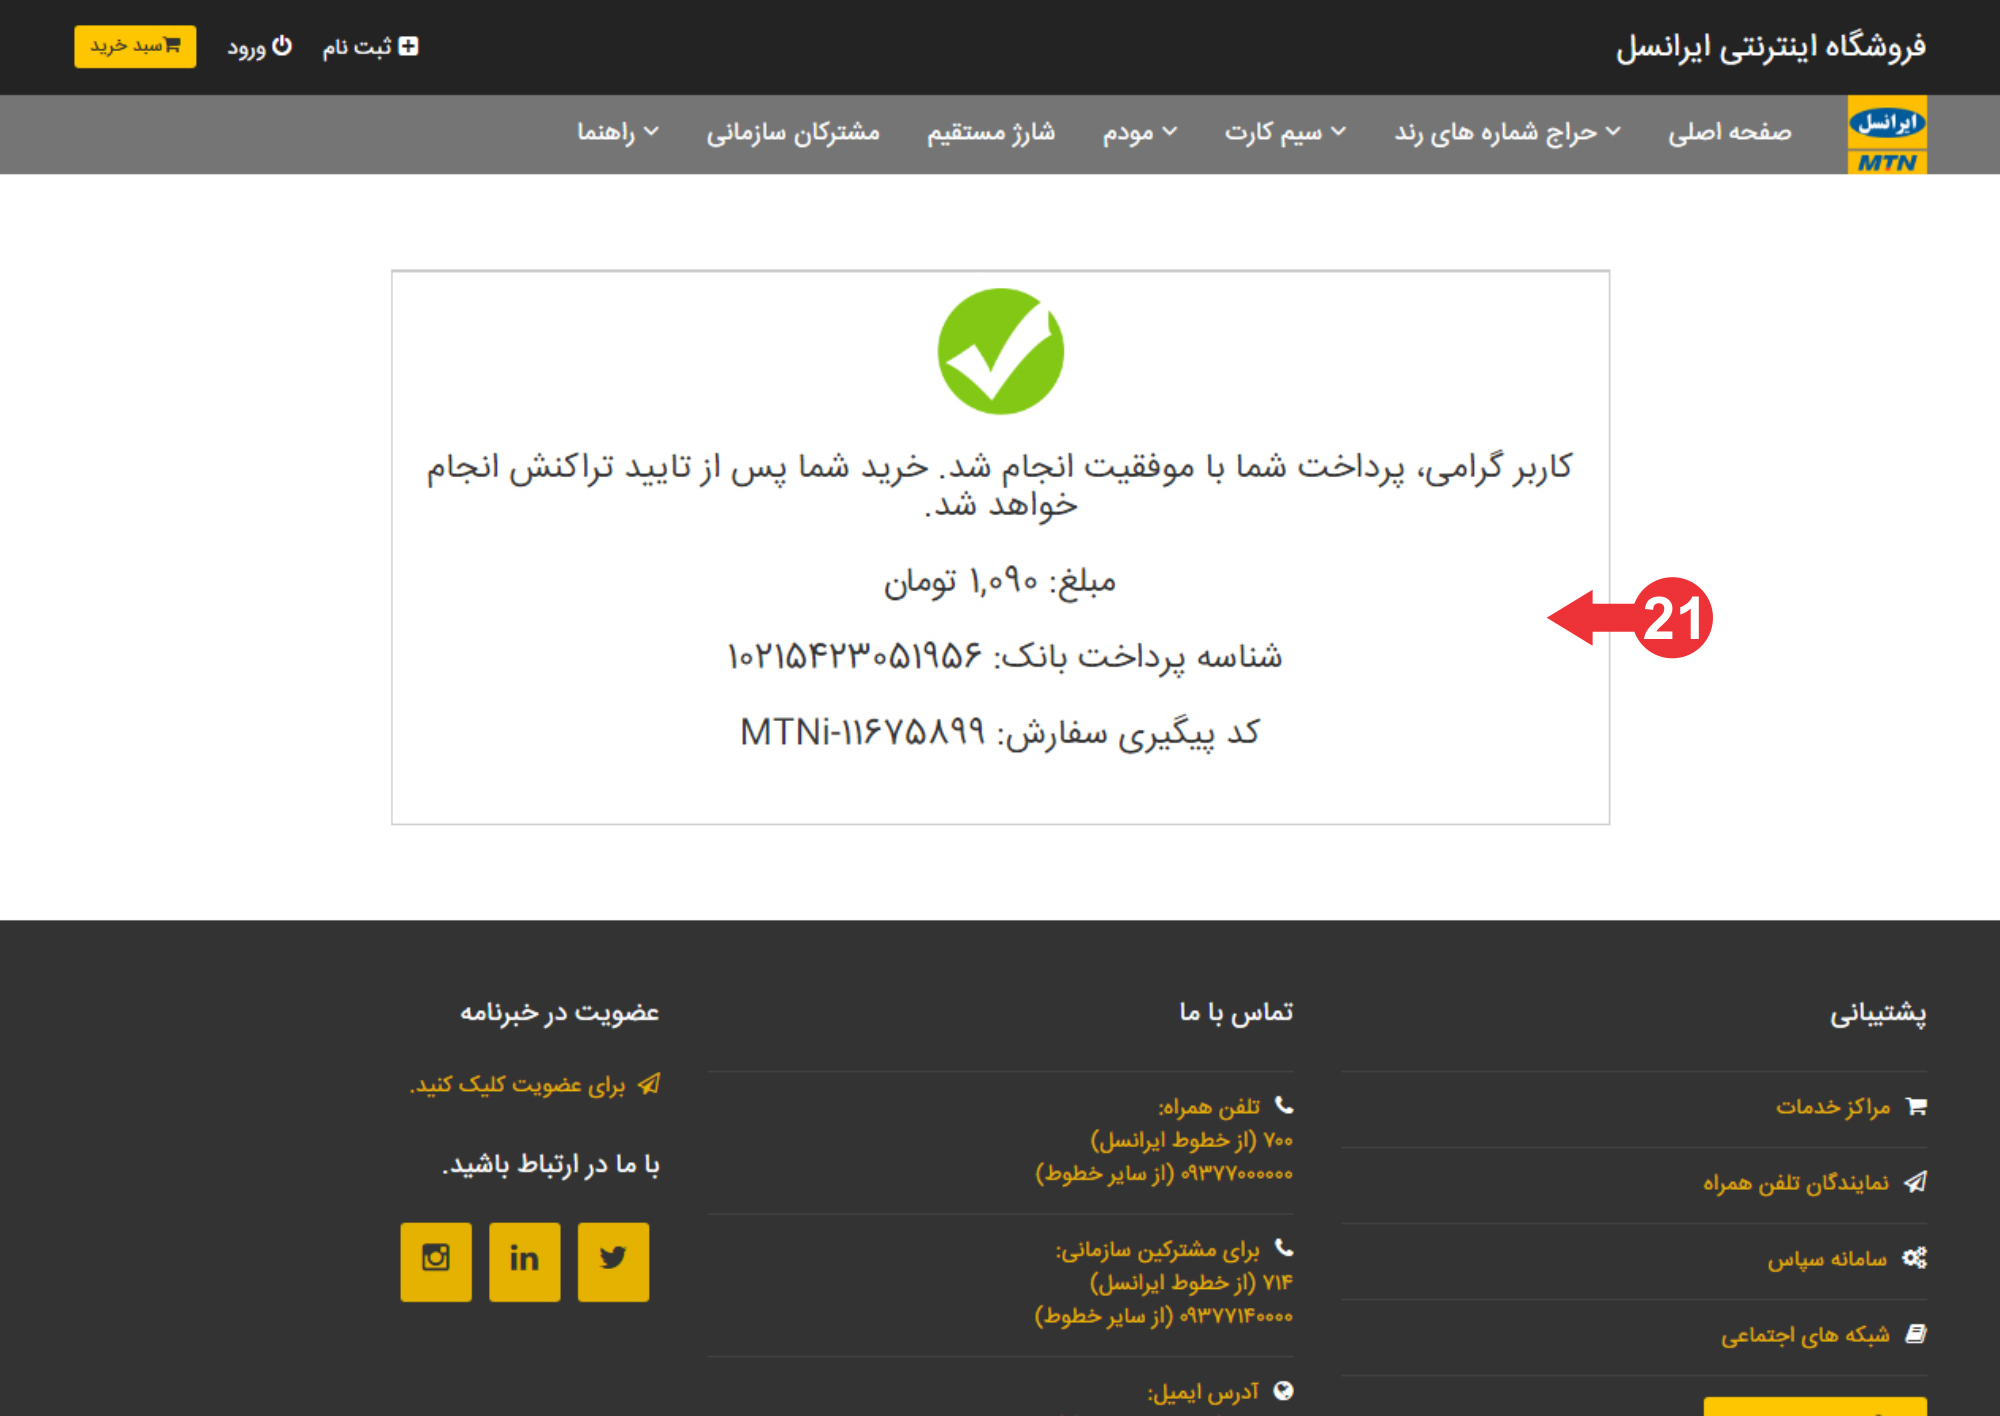 Fourth step for recharging SIM card for Internet access in Iran